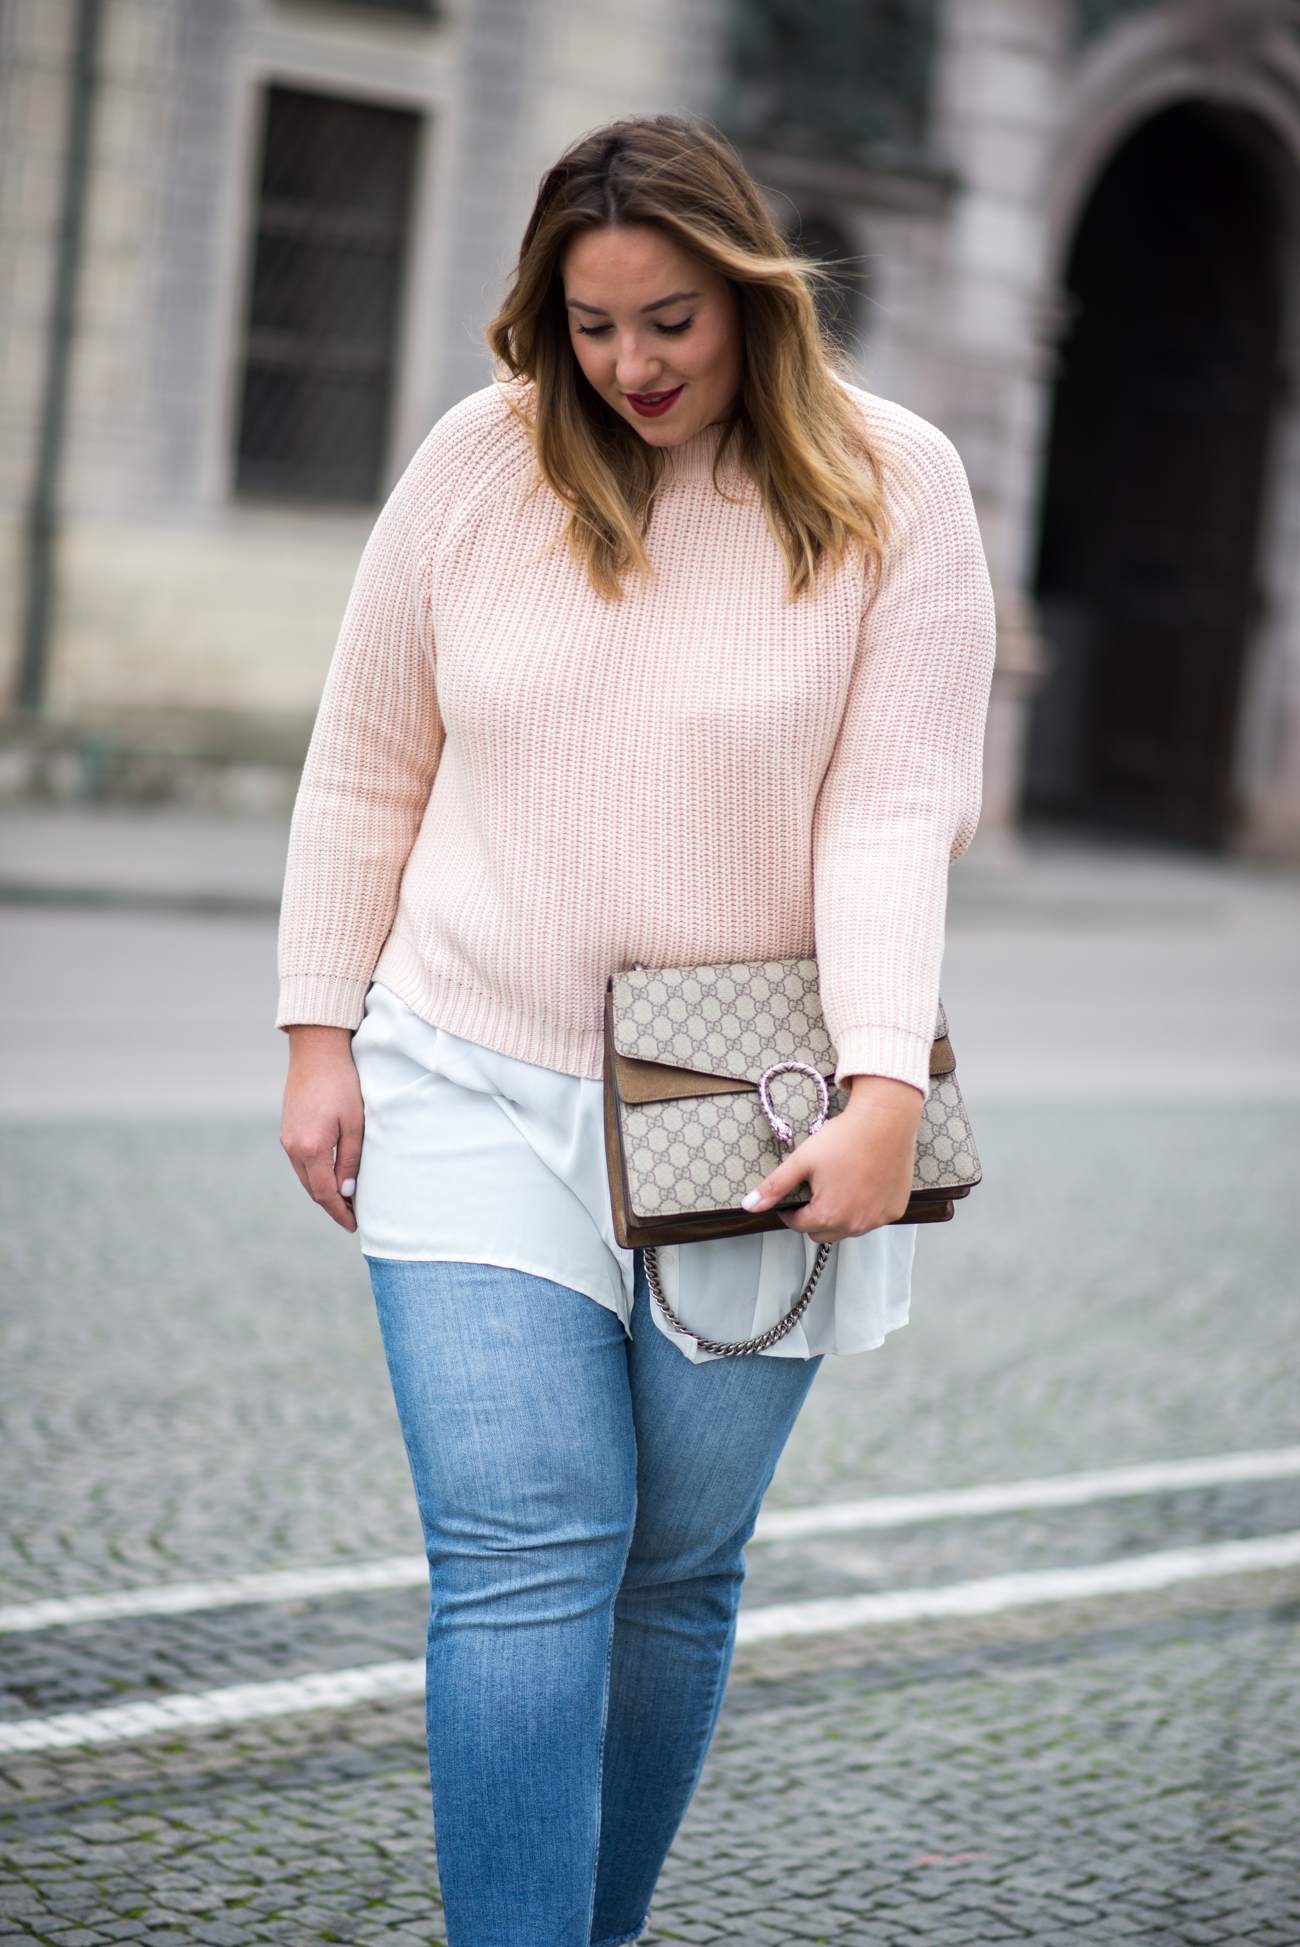 the-skinny-and-the-curvy-one_fashion_plussize_marina-rinaldi_chanel_jeans_blue-jeans_curve-outfit-inspo_muenchen-blogger_daily-outfit_plus-size-blog_plus-size-blogger-deutschland_-10-von-23